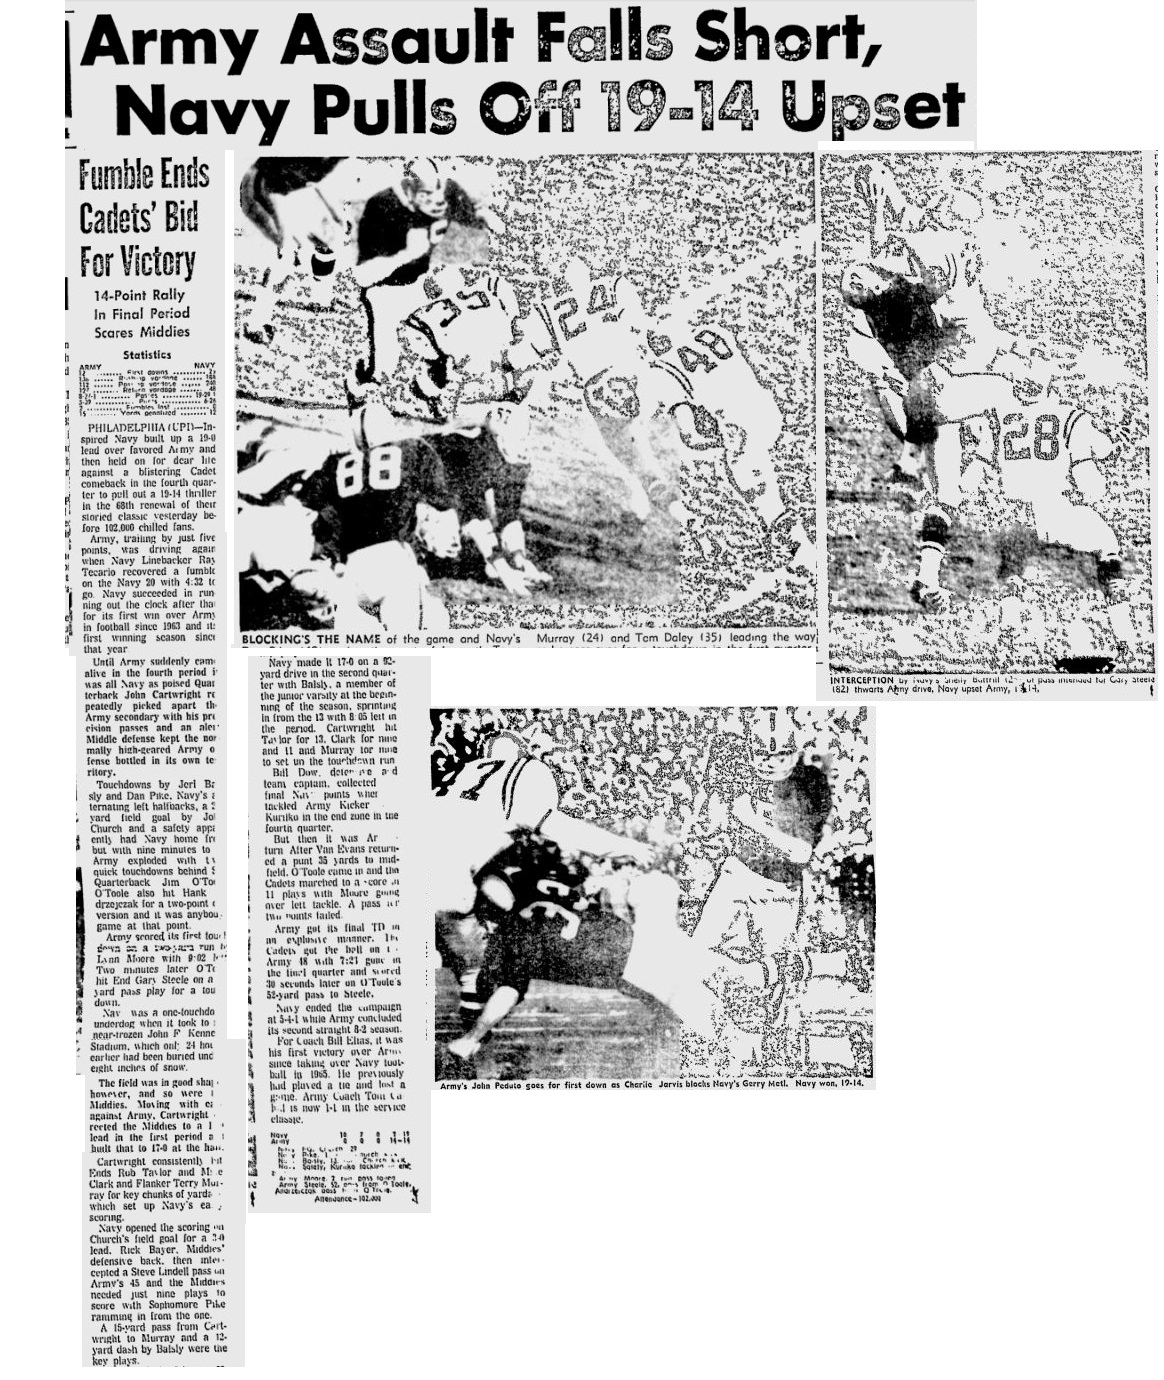 armyfb_1967_vsnavy_pittsburghpress_dec31967